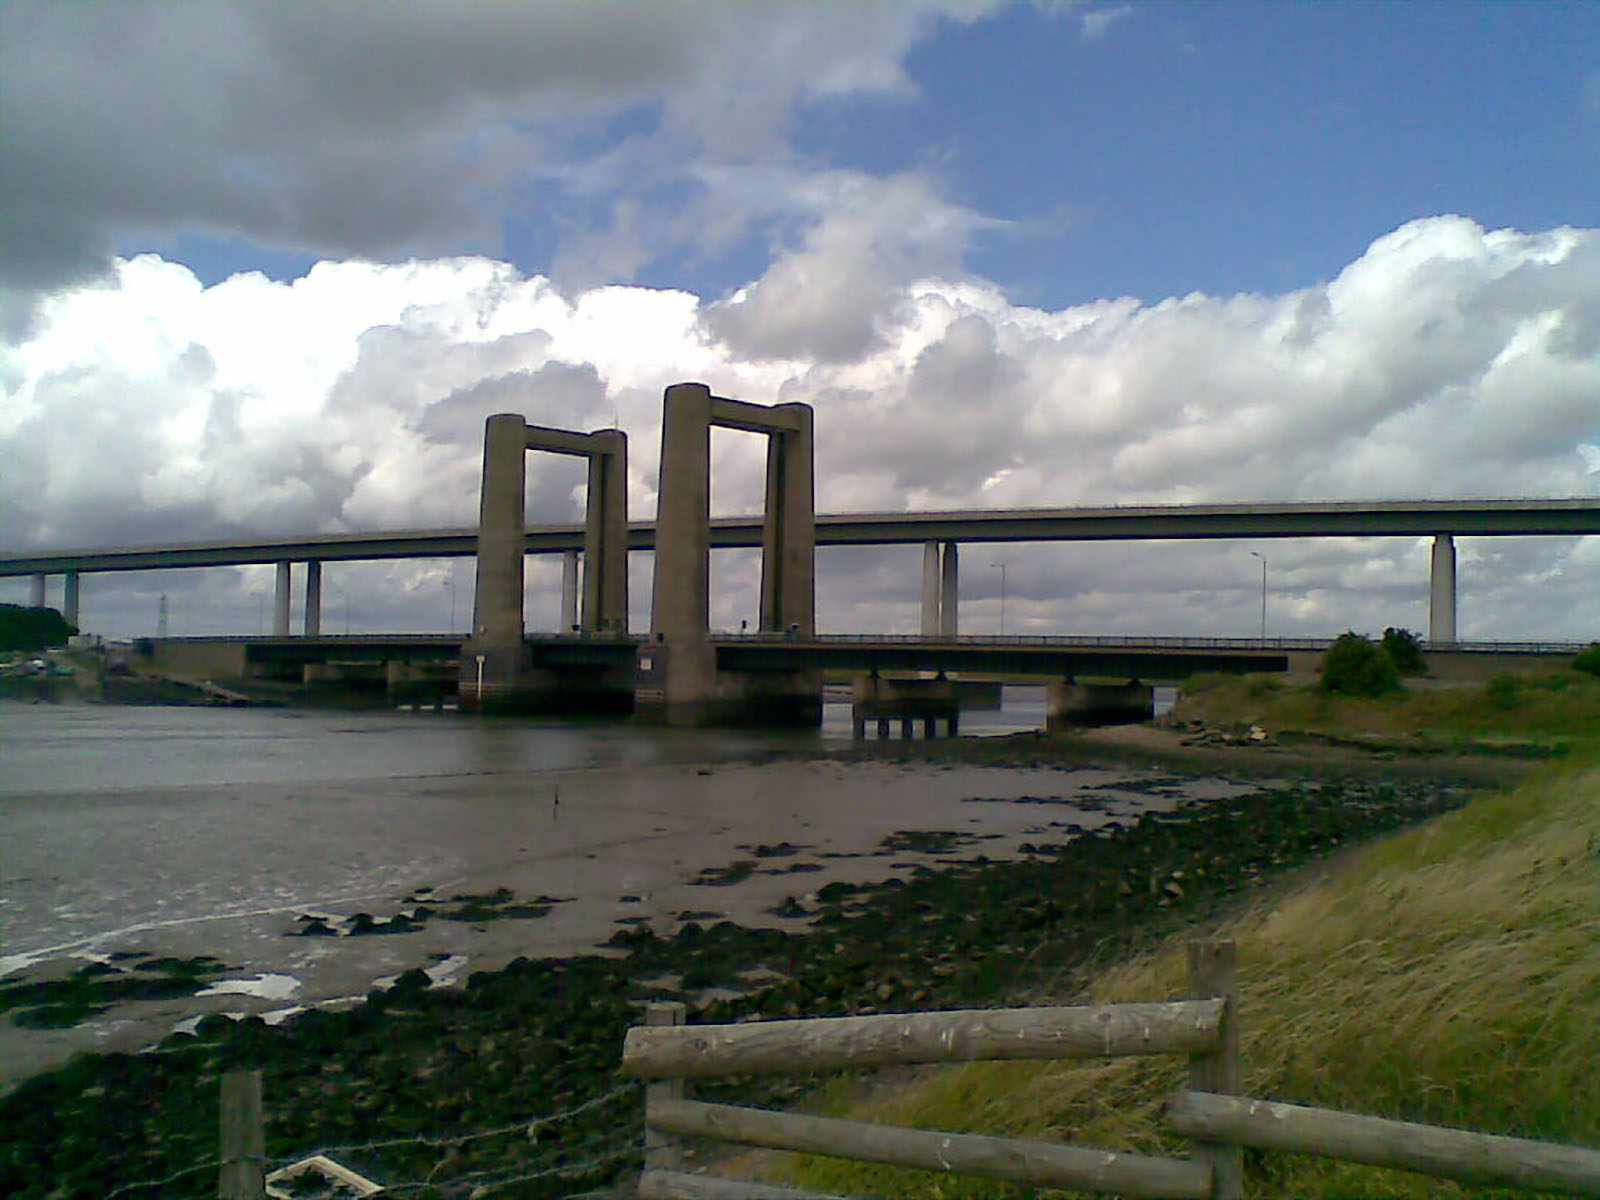 The Kingsferry Bridge, looking West from the Isle of Sheppey, with the more modern Sheppey Crossing behind.